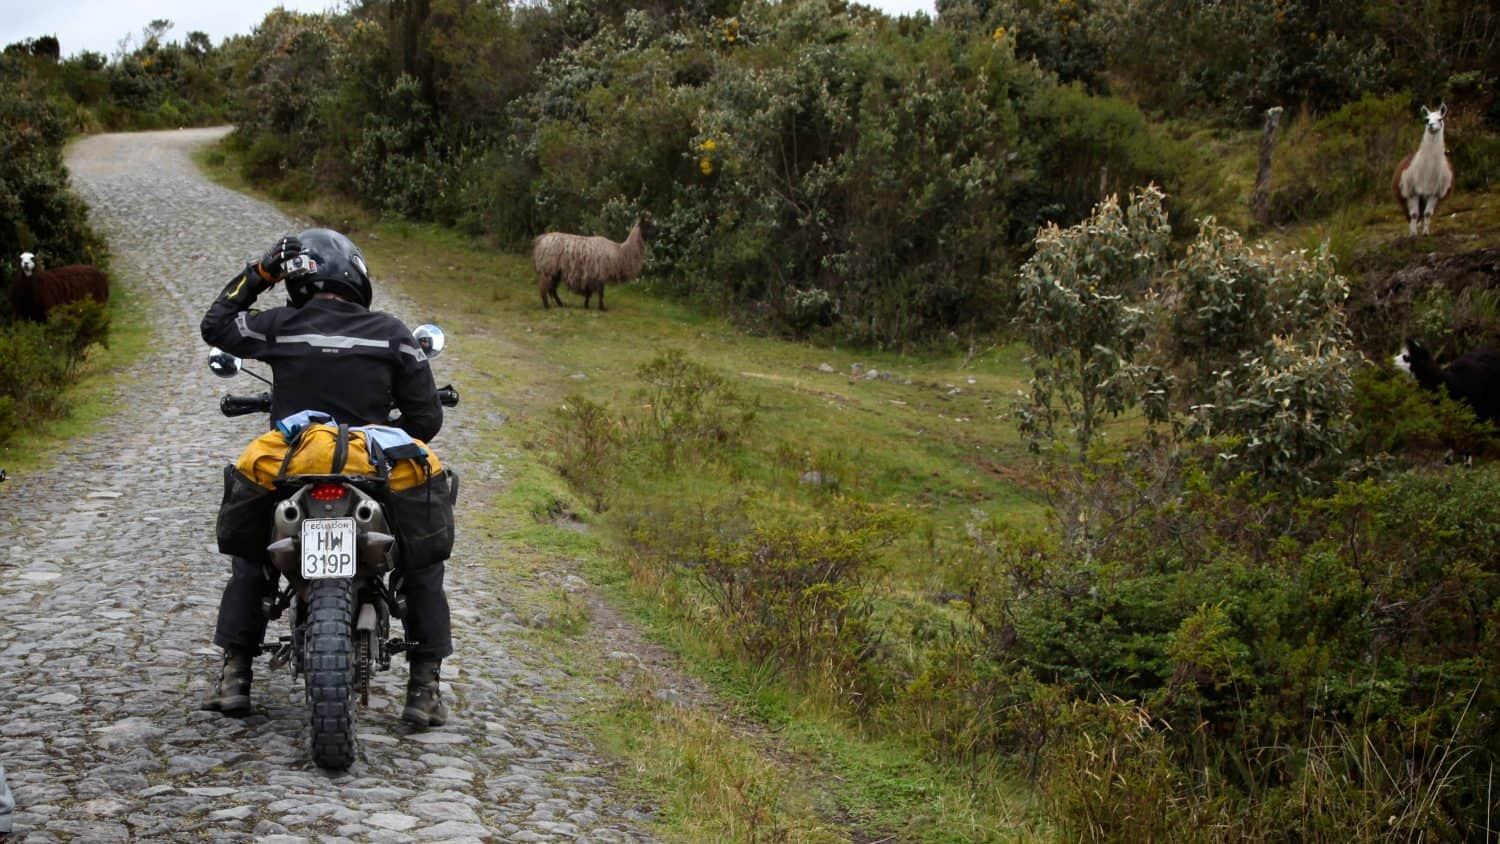 New Adventure Rider: Selecting a Motorcycle Suit